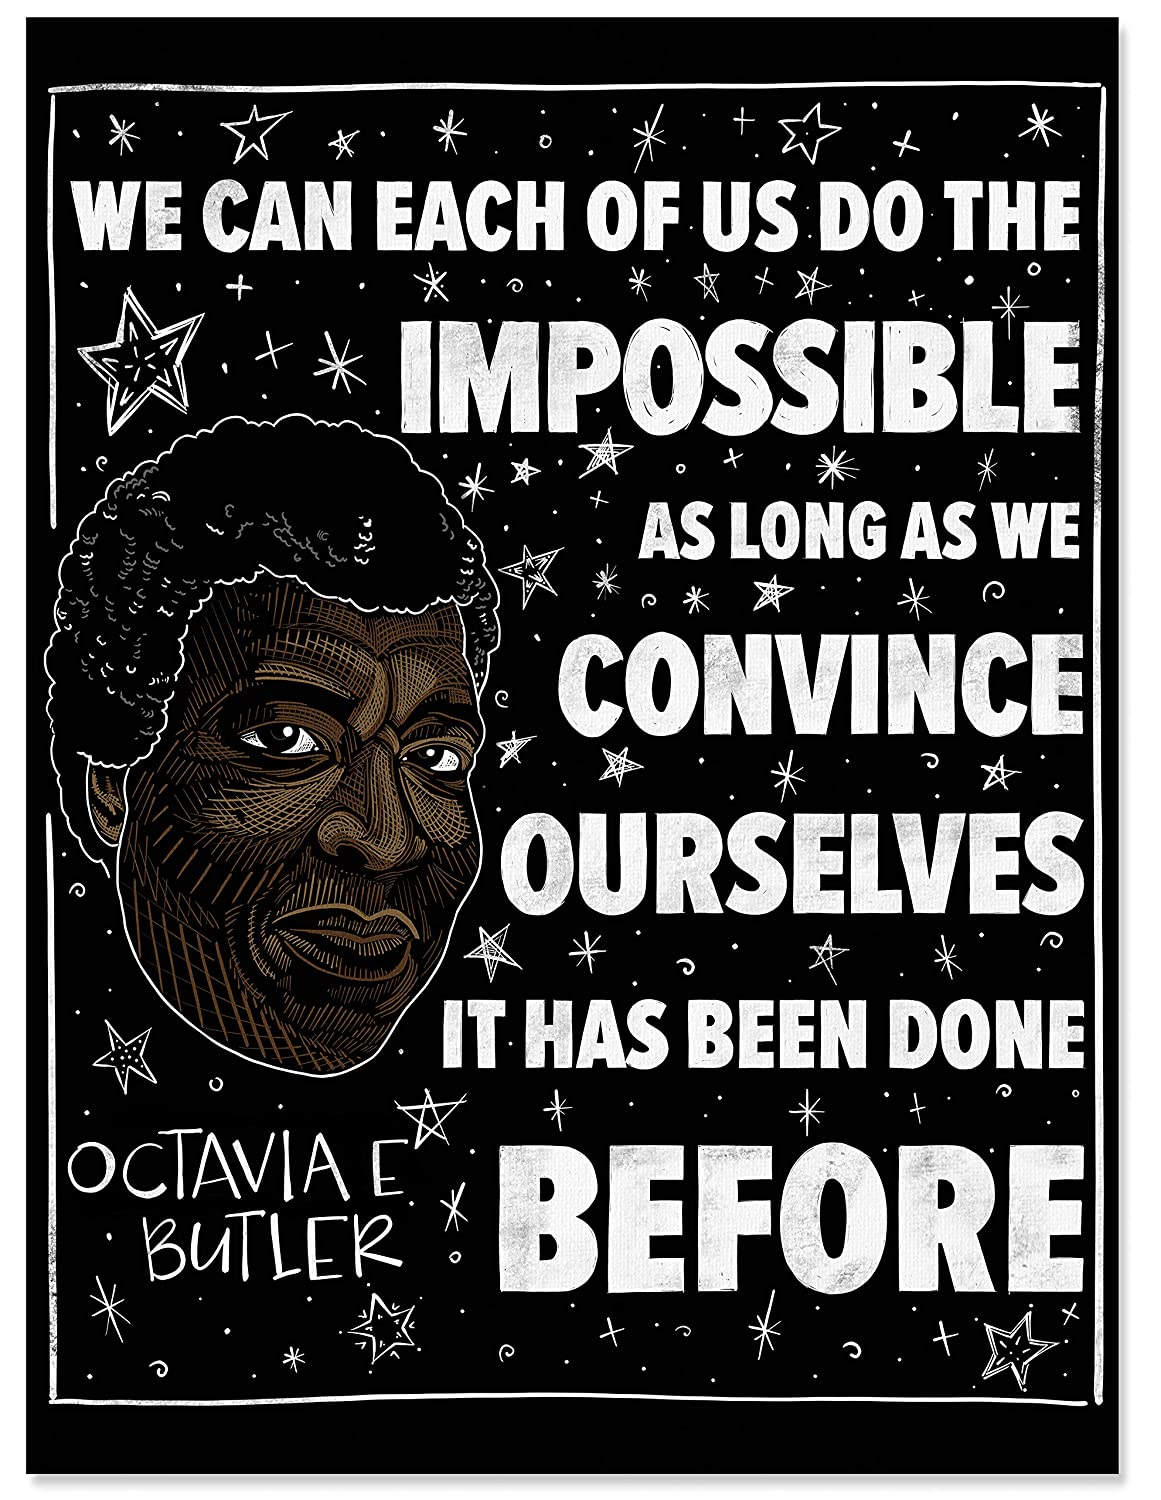 Bargain We Can Do the Impossible Octavia Art Max 51% OFF Matte P Quote Butler Print.